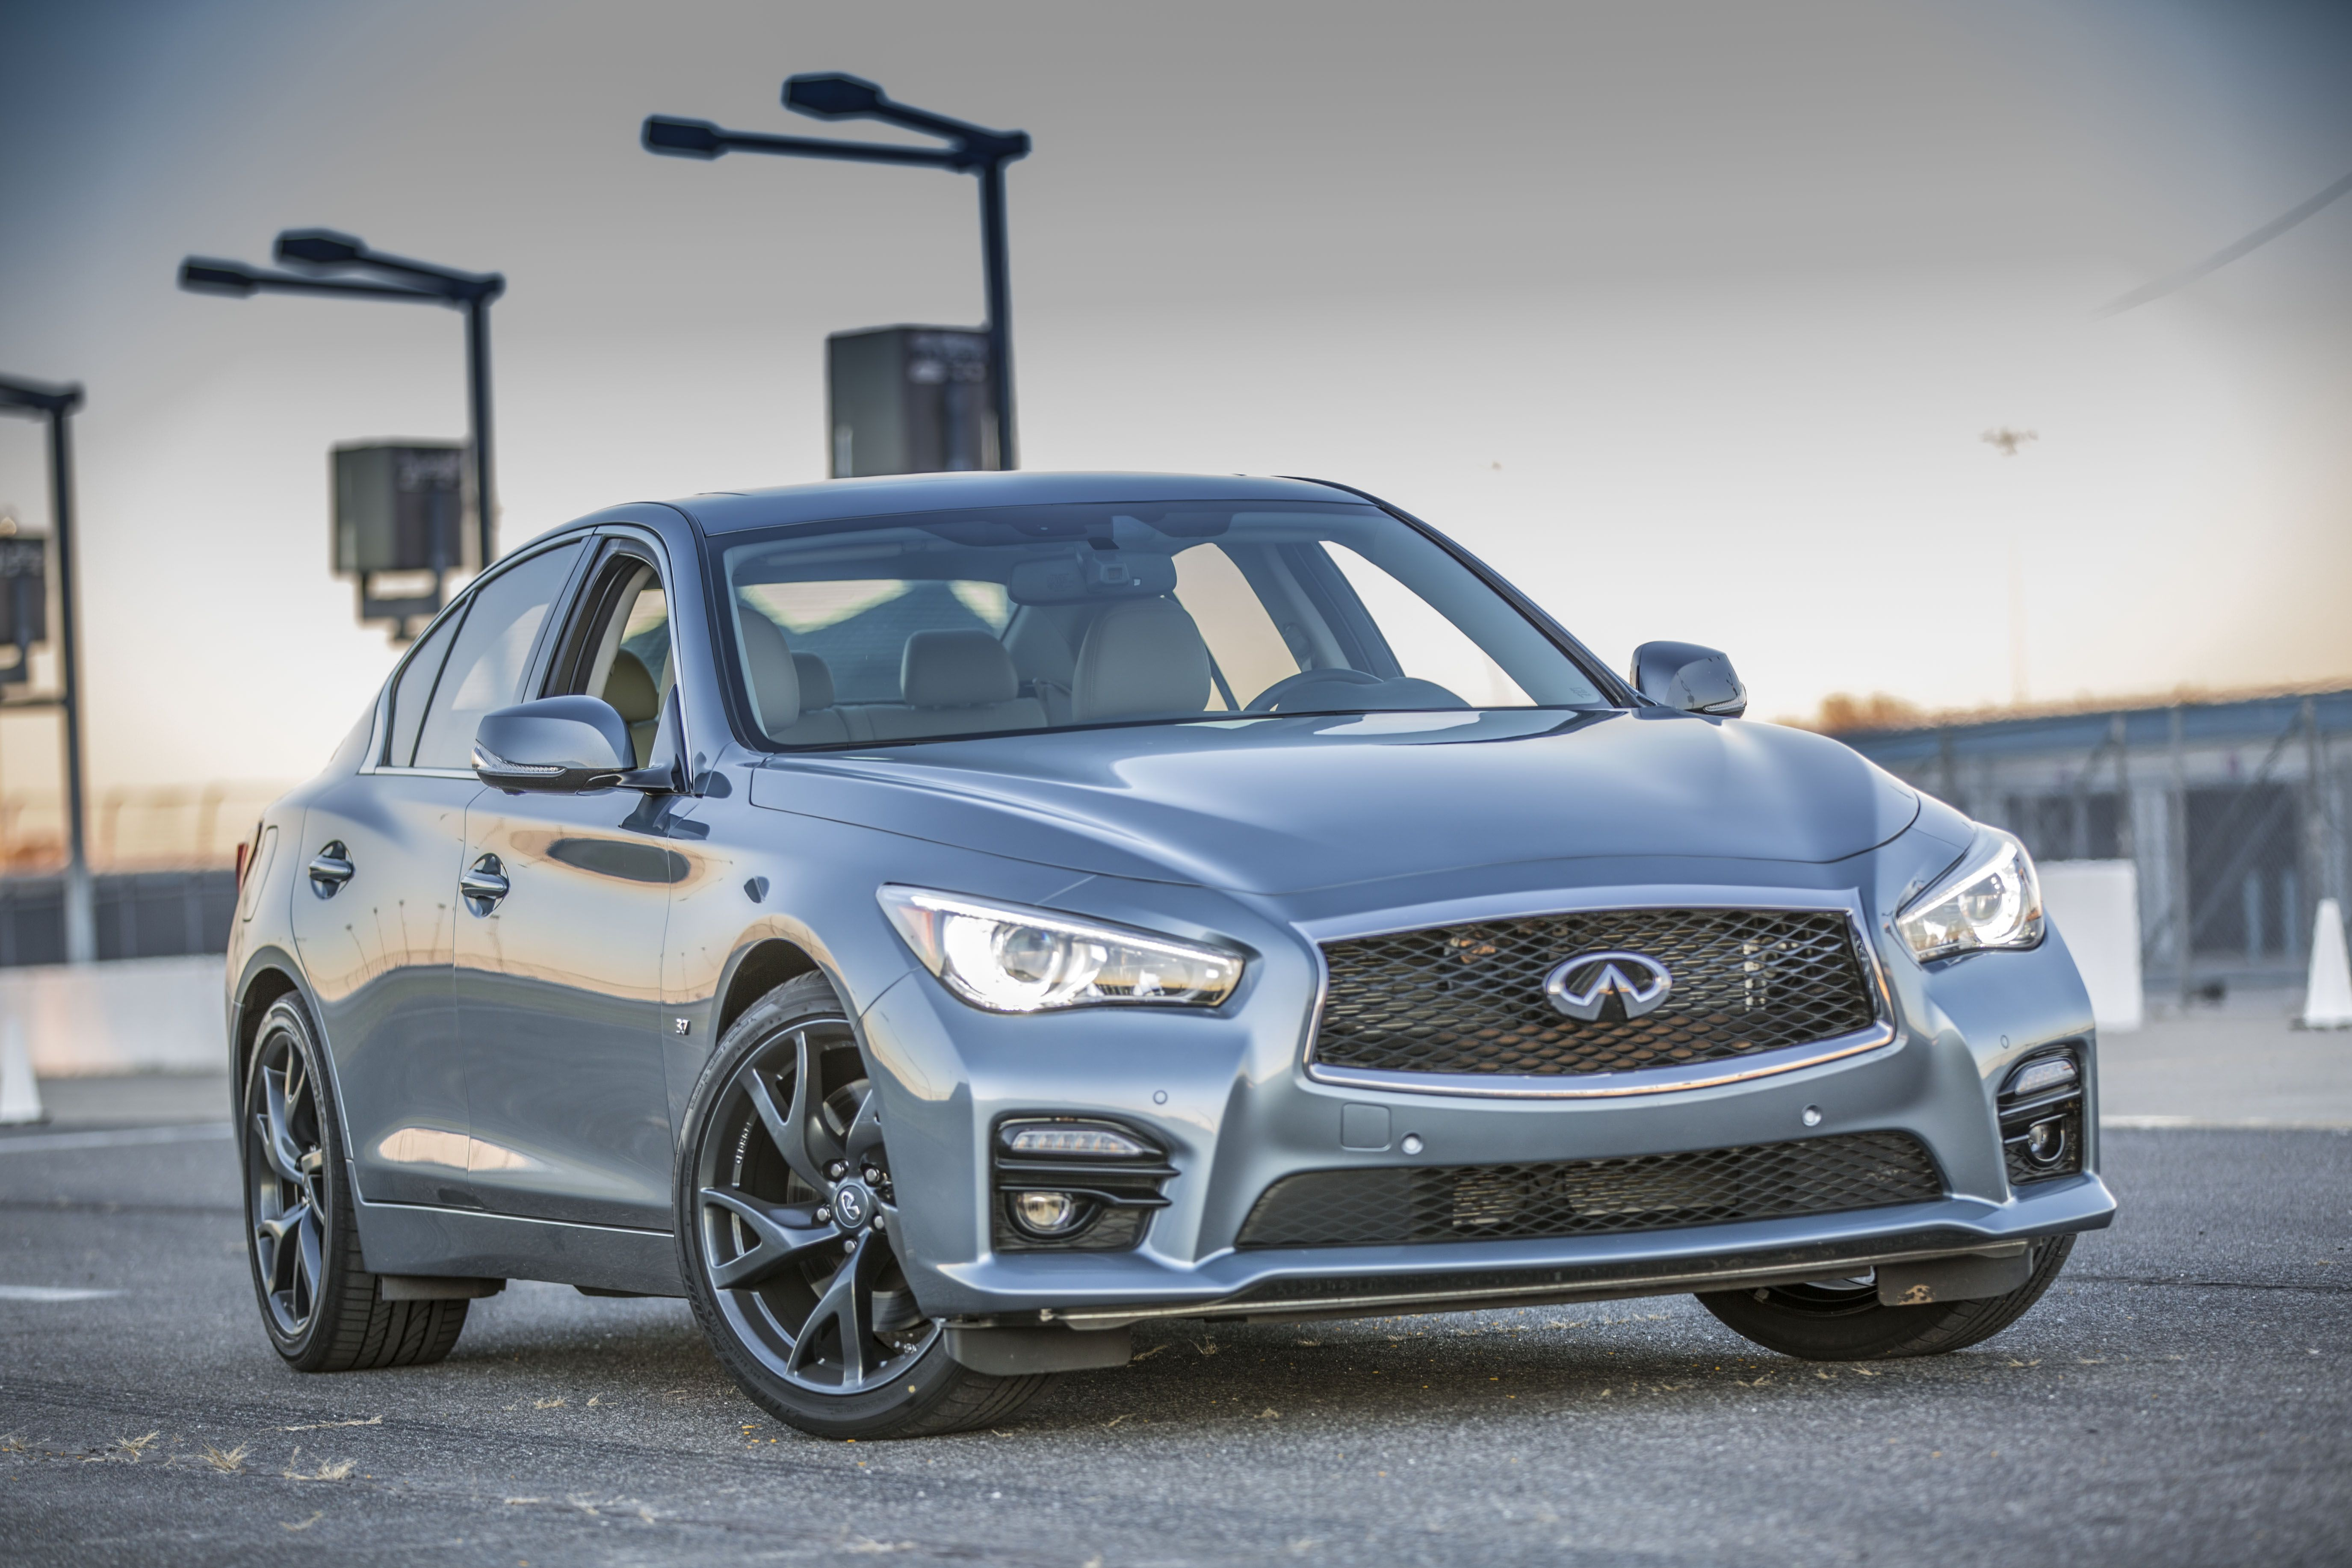 signature edition si top cars infinity infiniti price speed